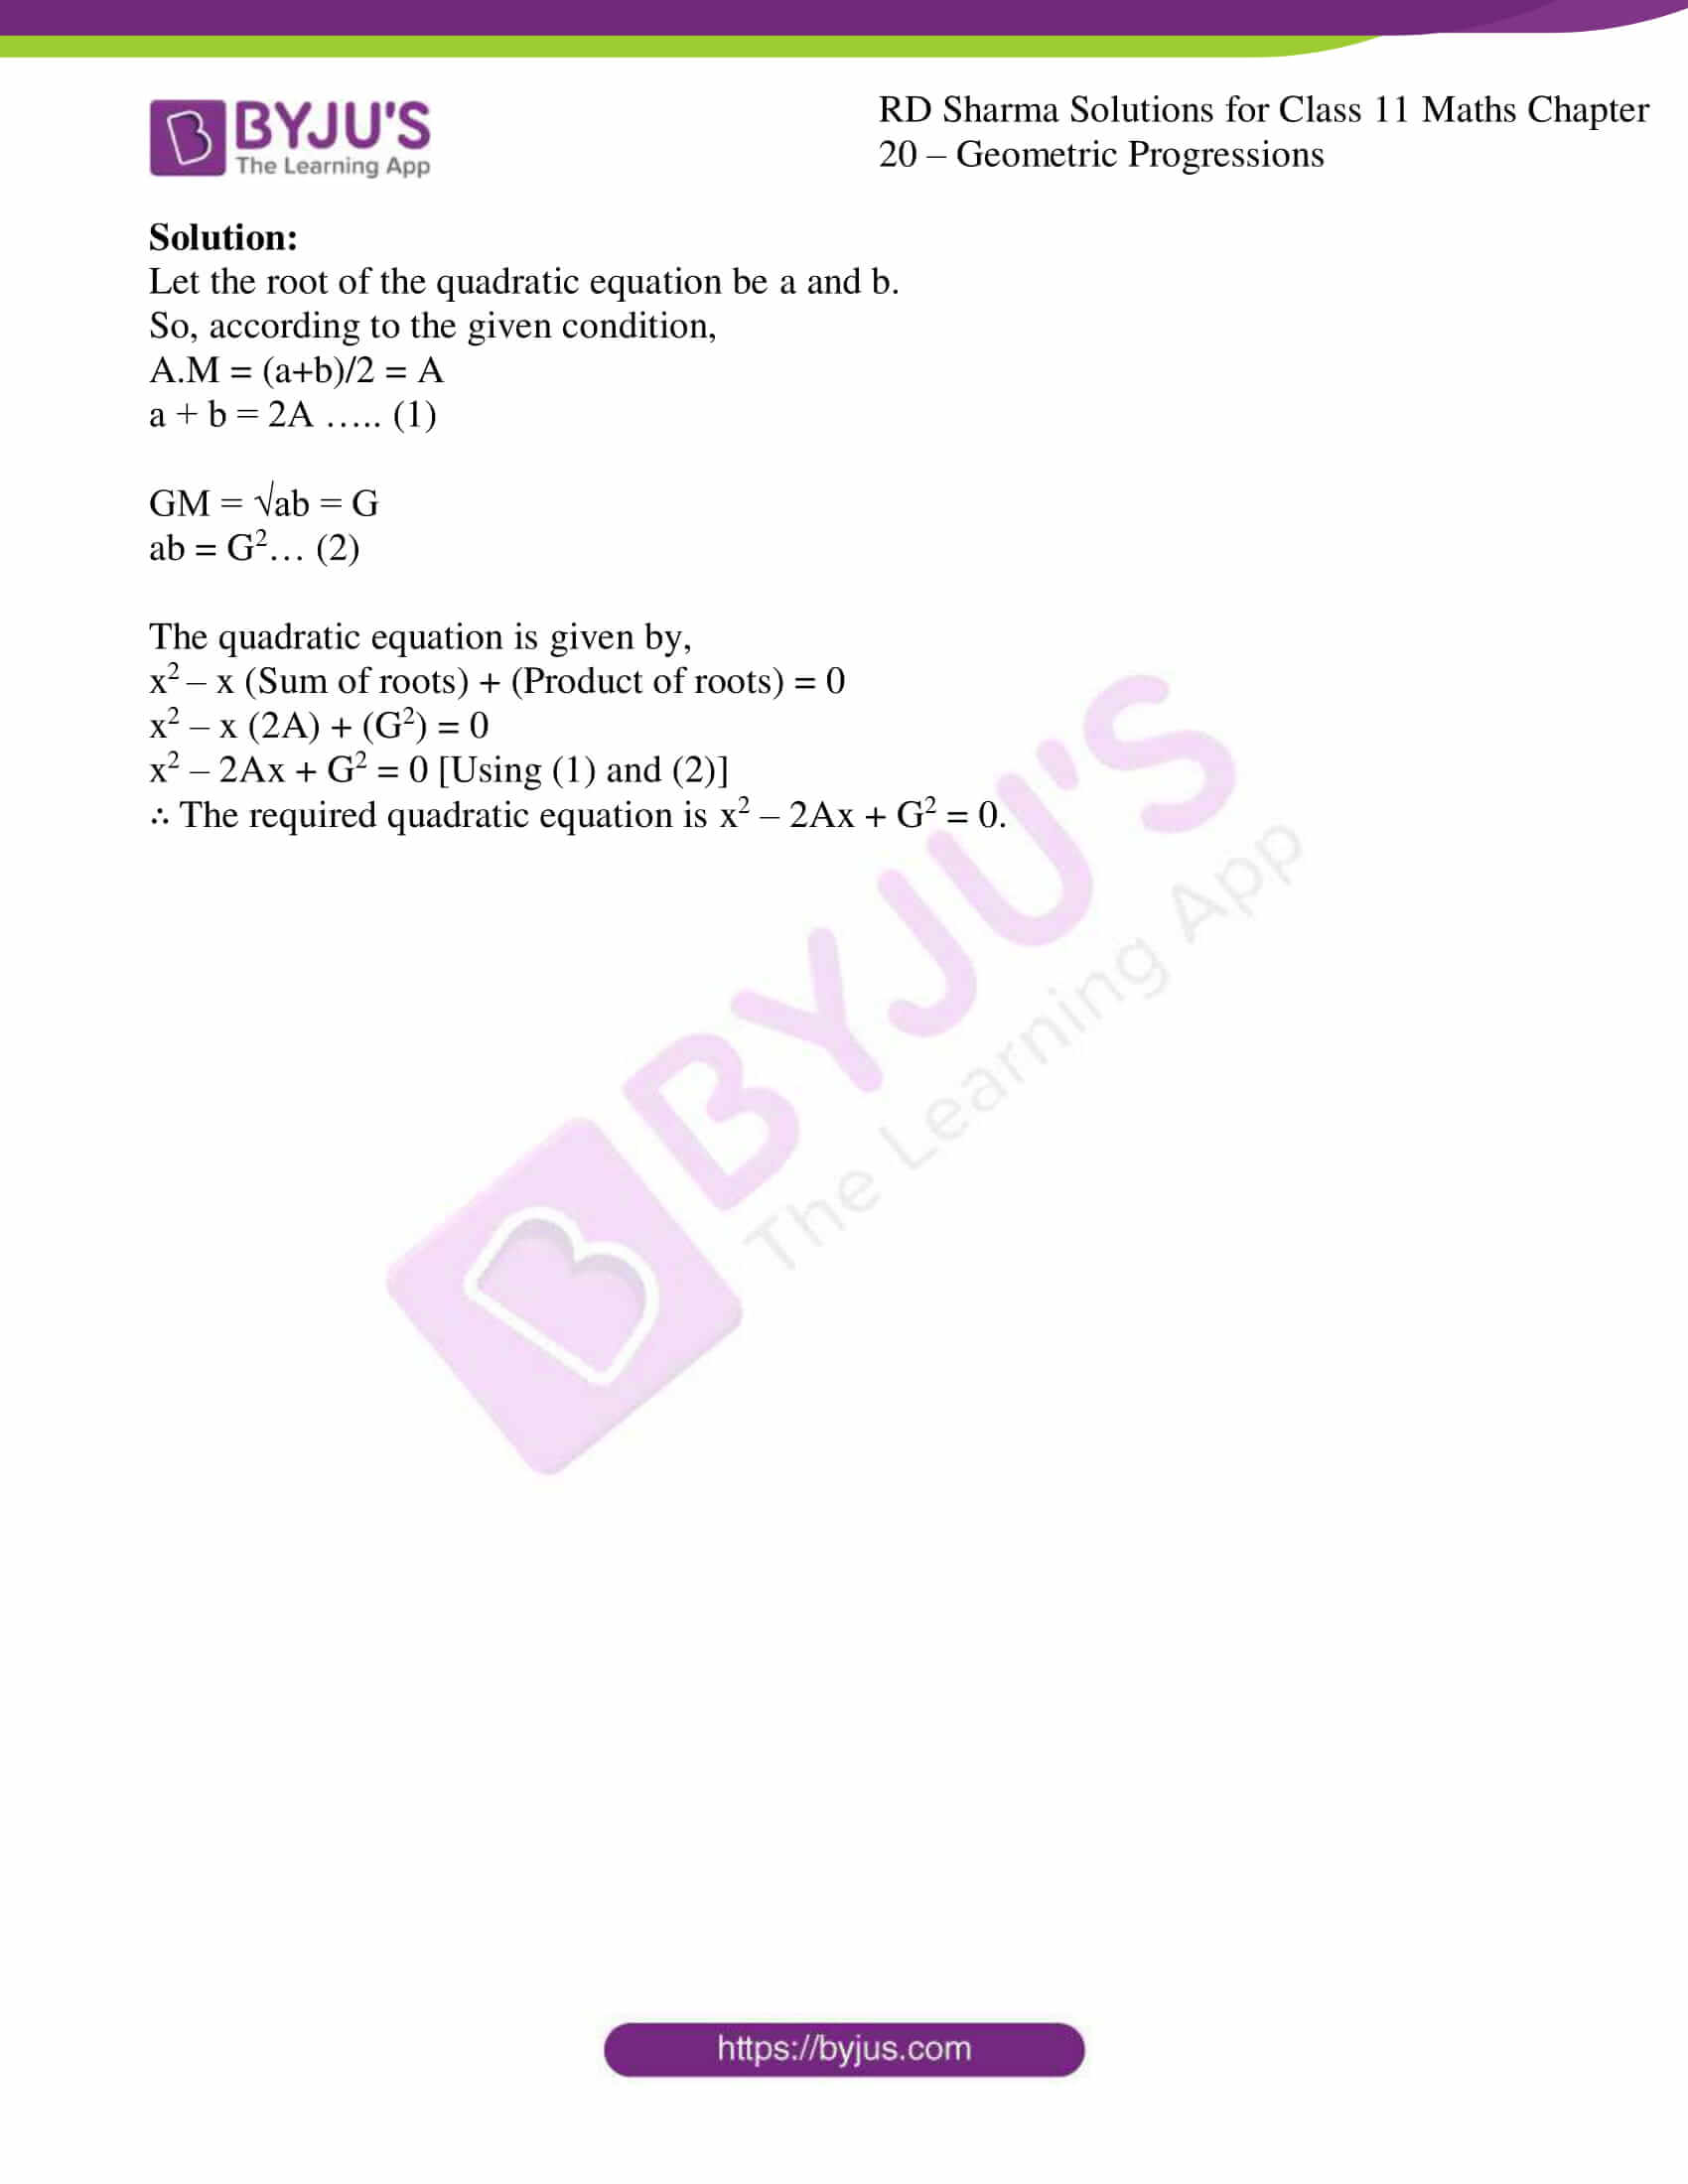 rd sharma class 11 maths ch 20 geometric progressions ex 6 4